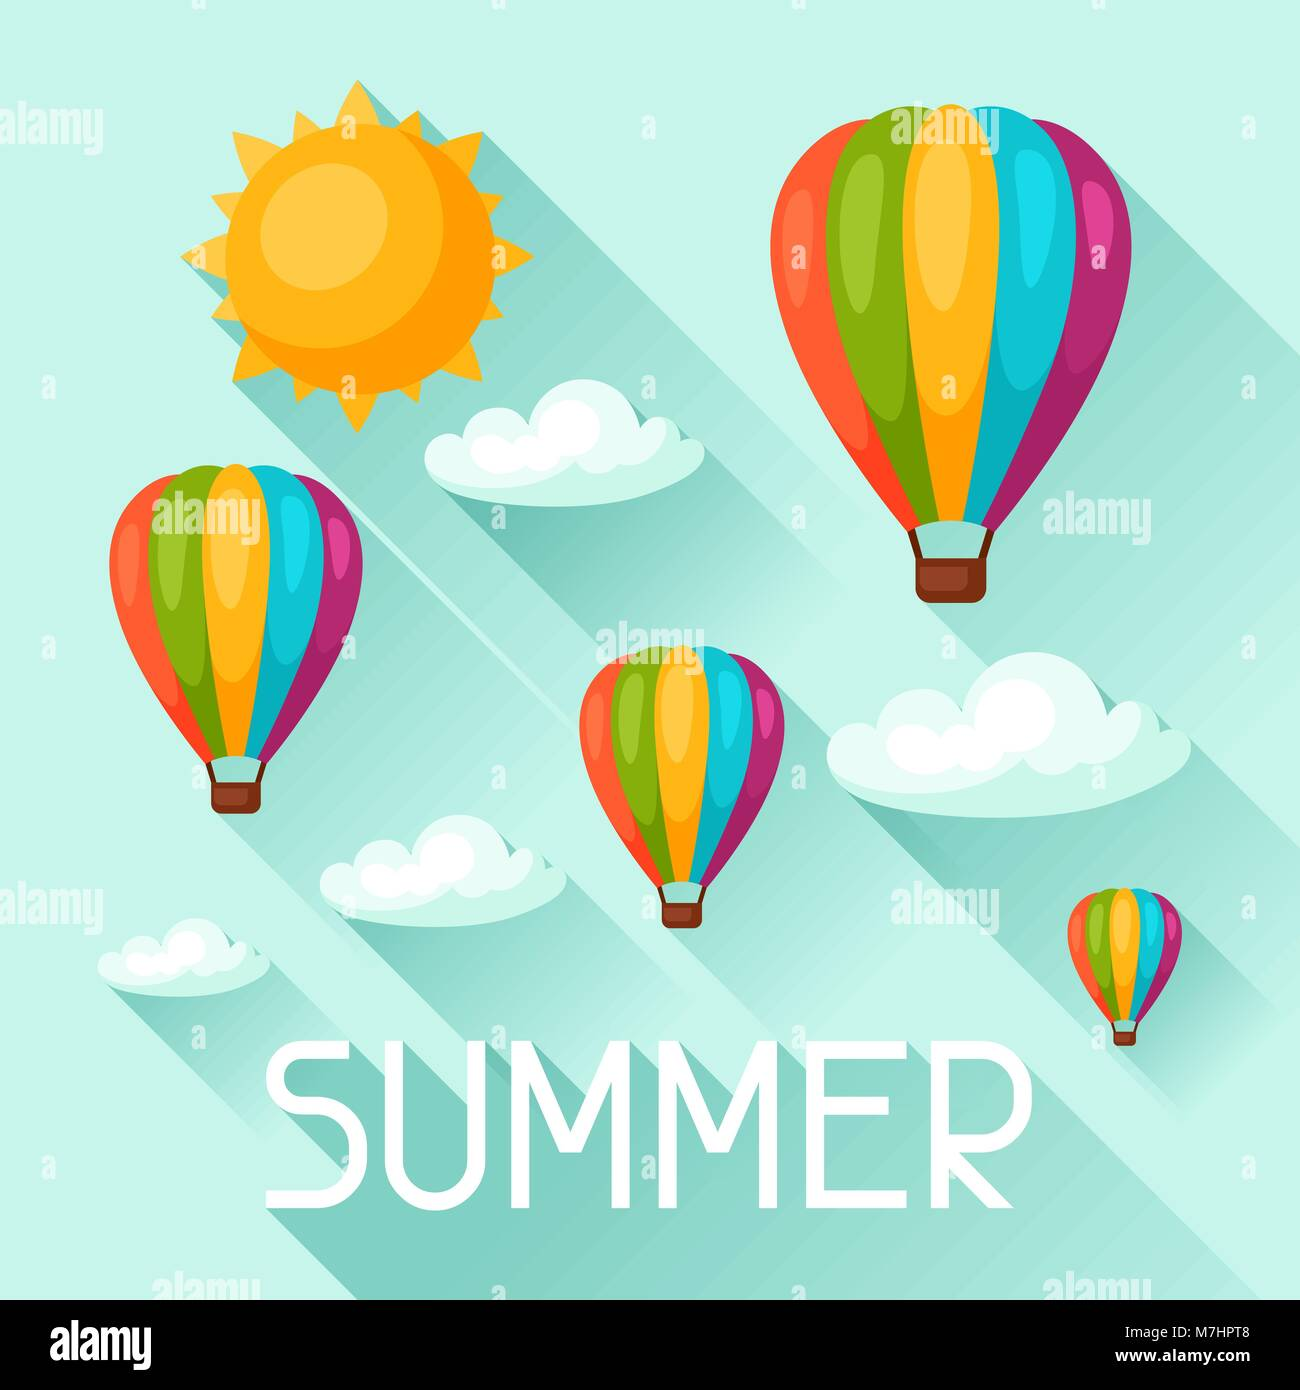 Summer background with hot air balloons. Image for advertising booklets, banners, flayers, article, social media - Stock Vector